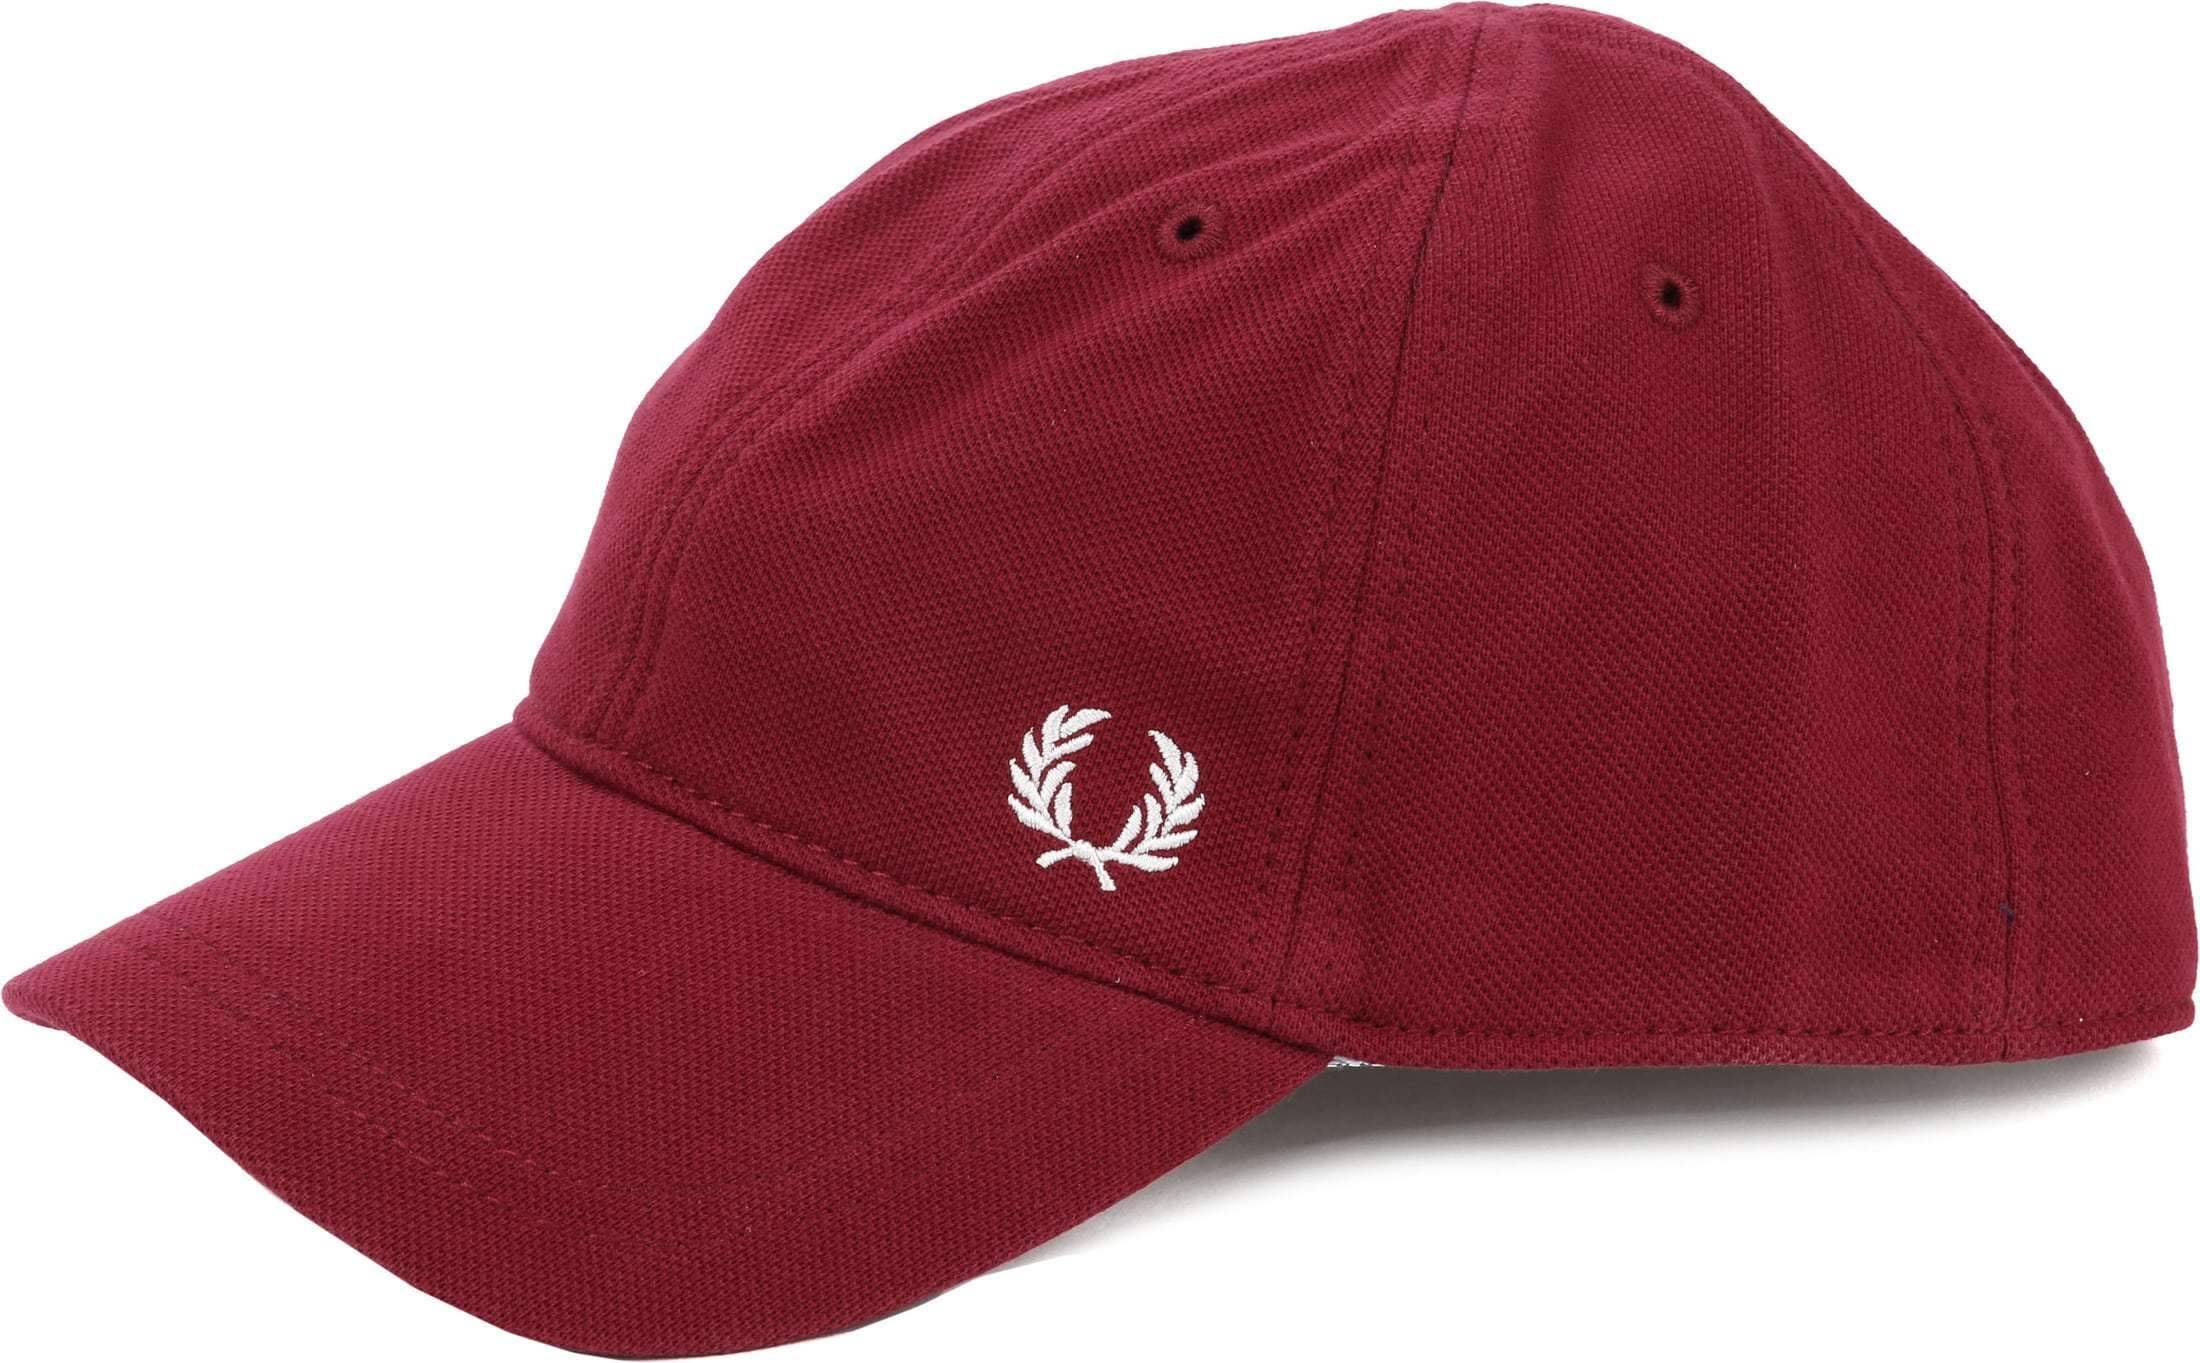 Fred Perry A27 Kappe Bordeaux foto 0